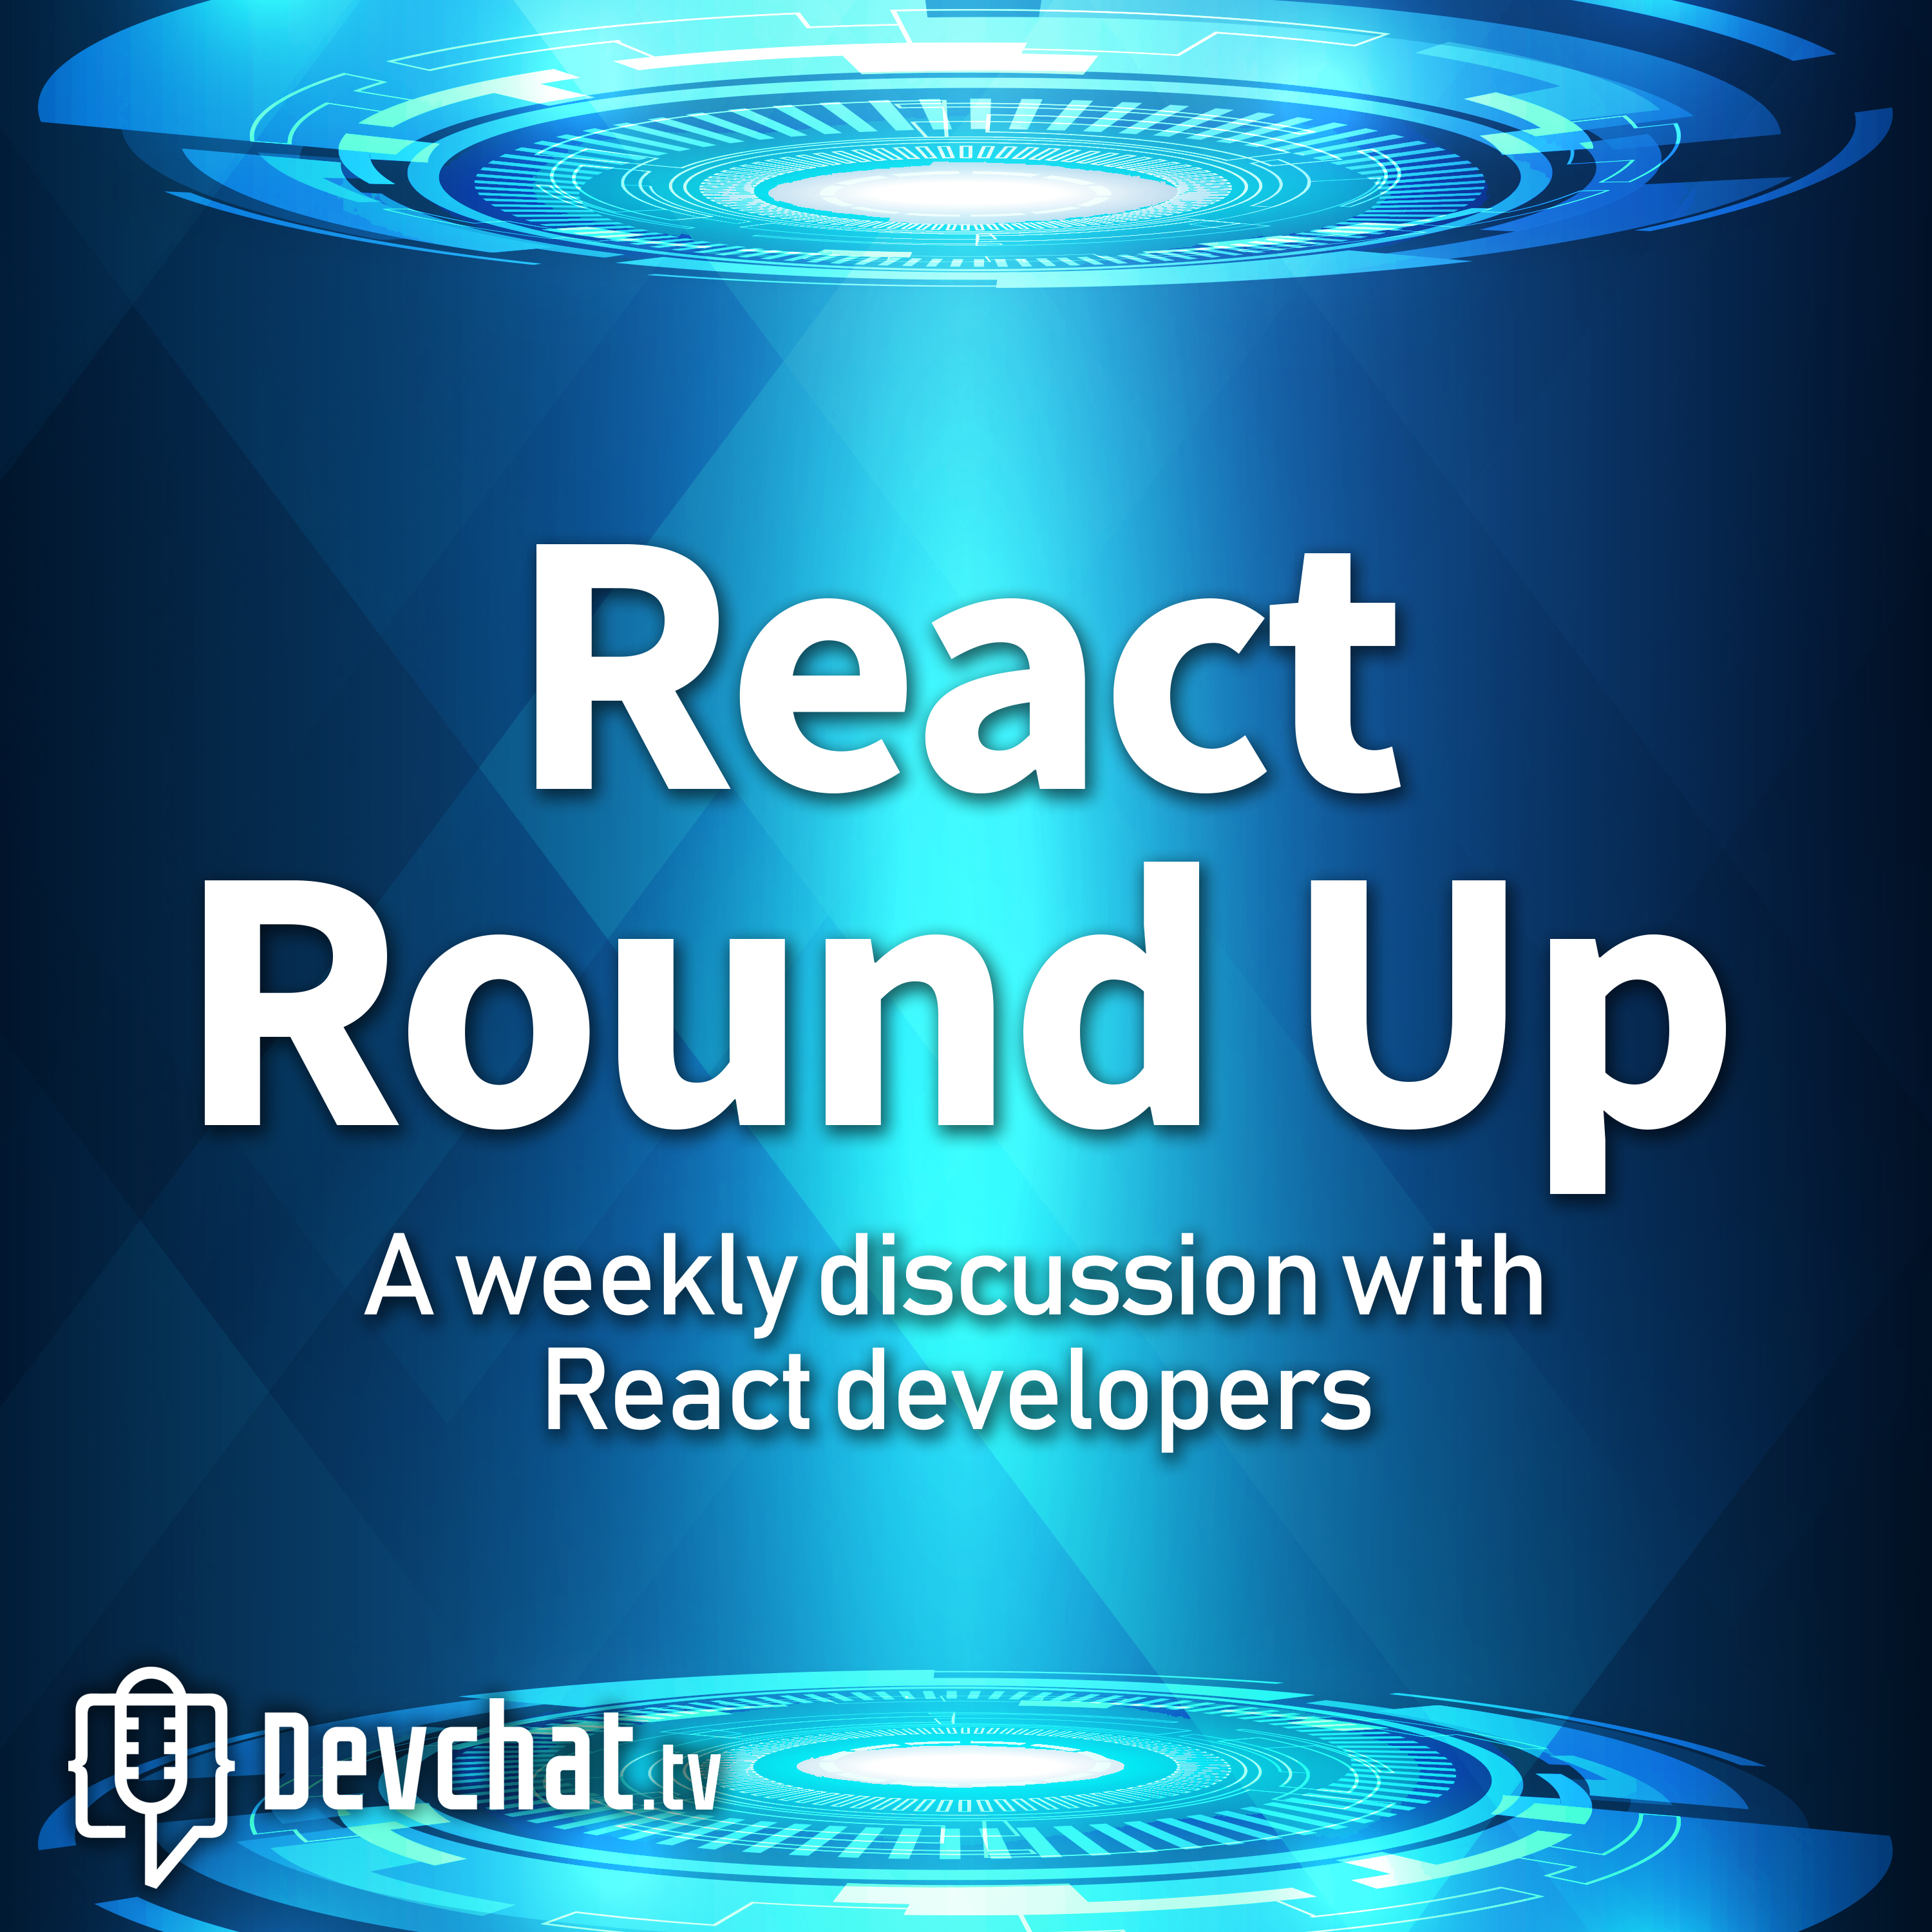 React Round Up By Devchattv On Apple Podcasts To Refreshment The Knot Head Part I Mastering Eldredge